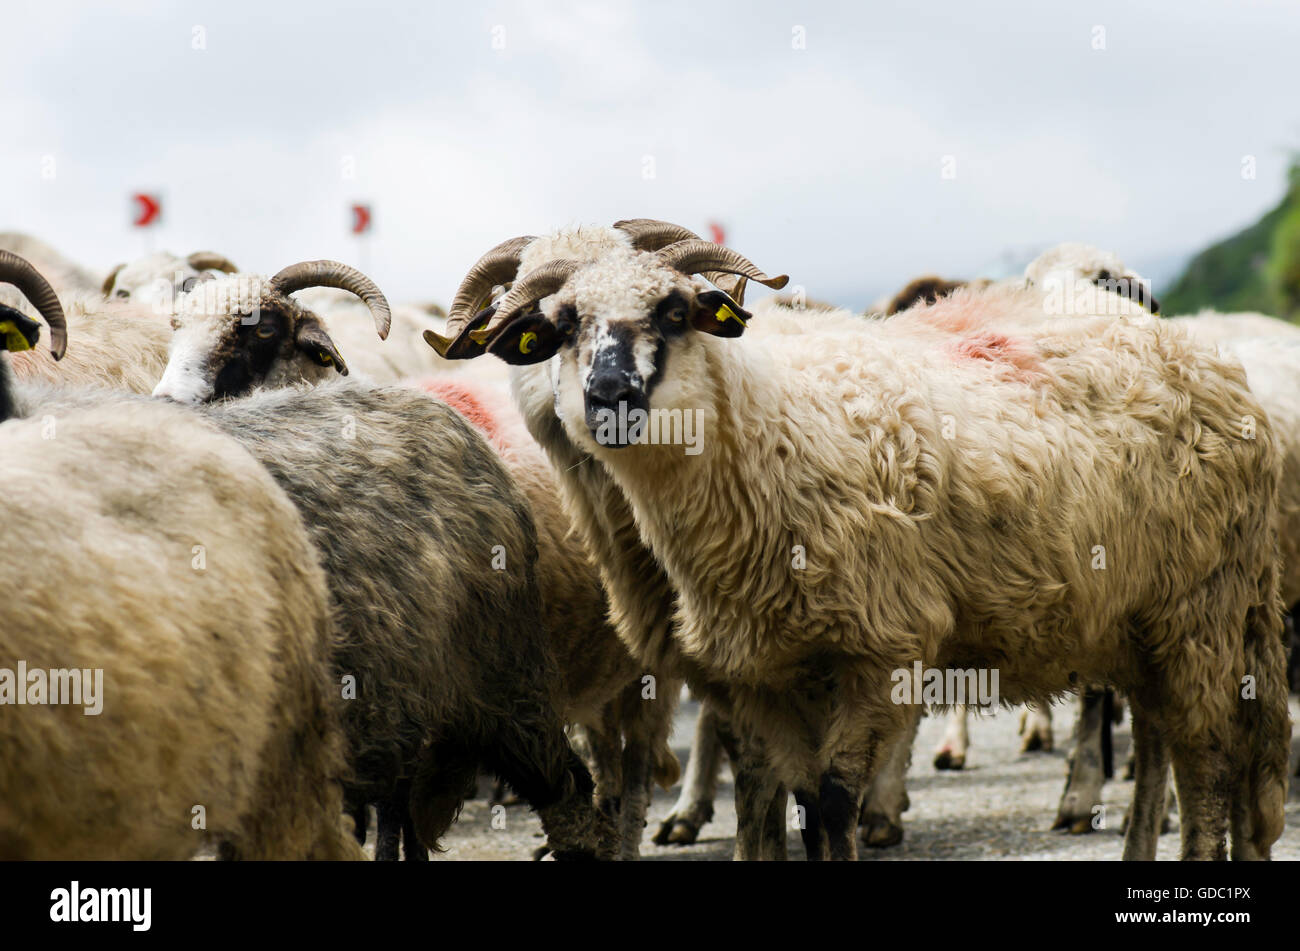 Flock of sheep white and grey crossing the street - Stock Image